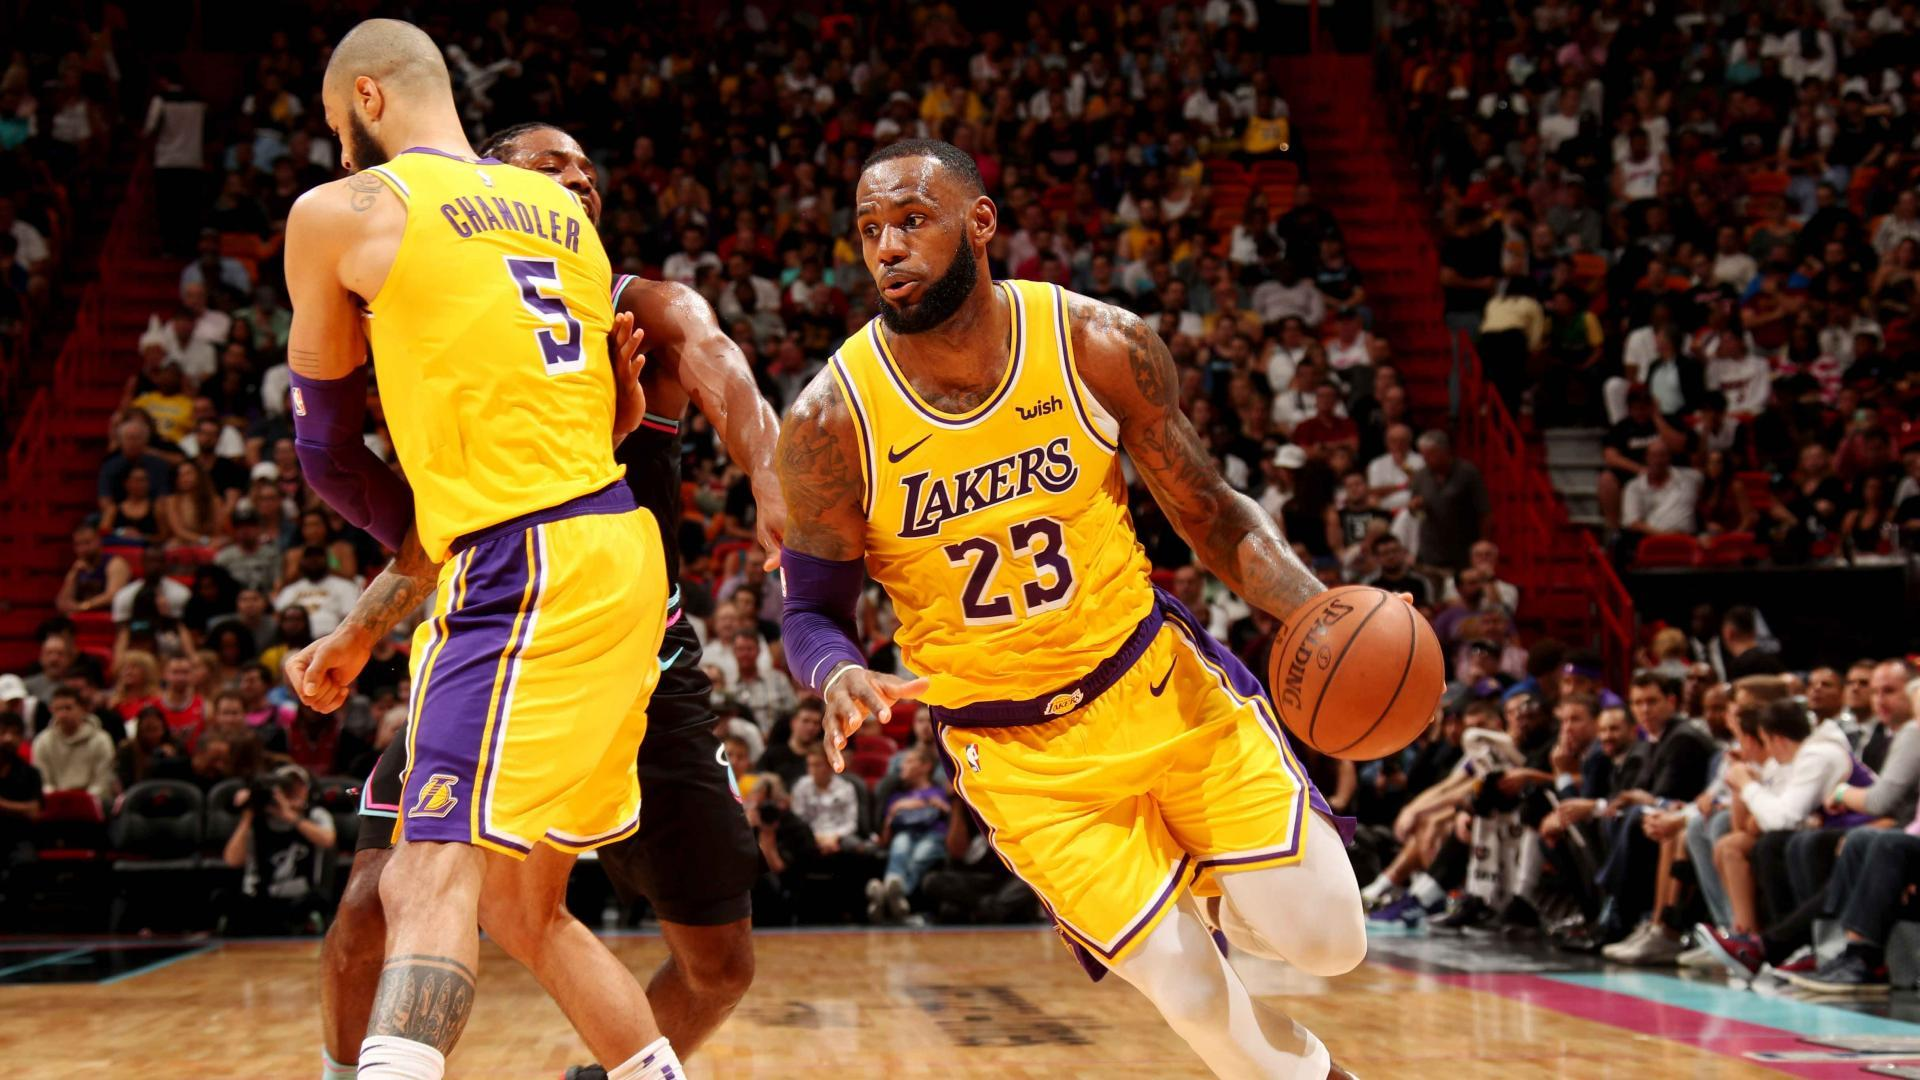 19.11.18. Обзор. GAME RECAP: Lakers 113, Heat 97